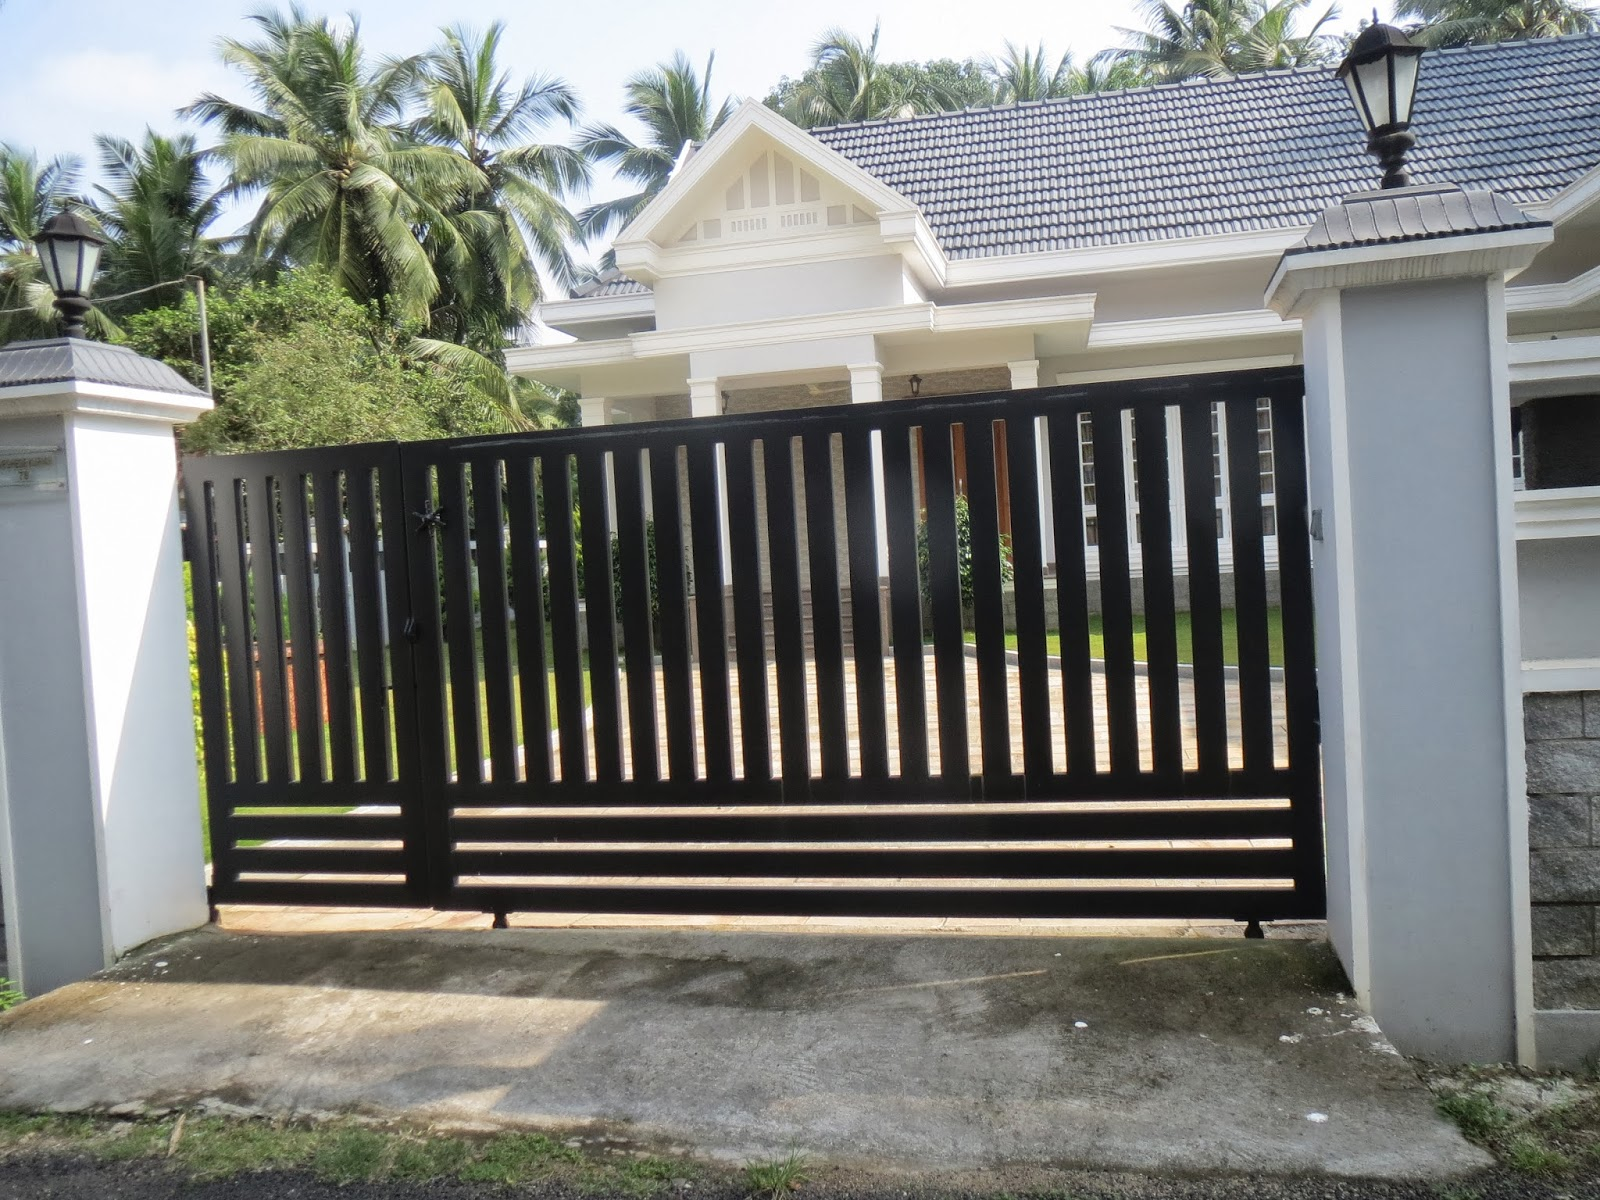 Modern Beach Homes Img Modern Door Gate Design Gates For Homes Garden